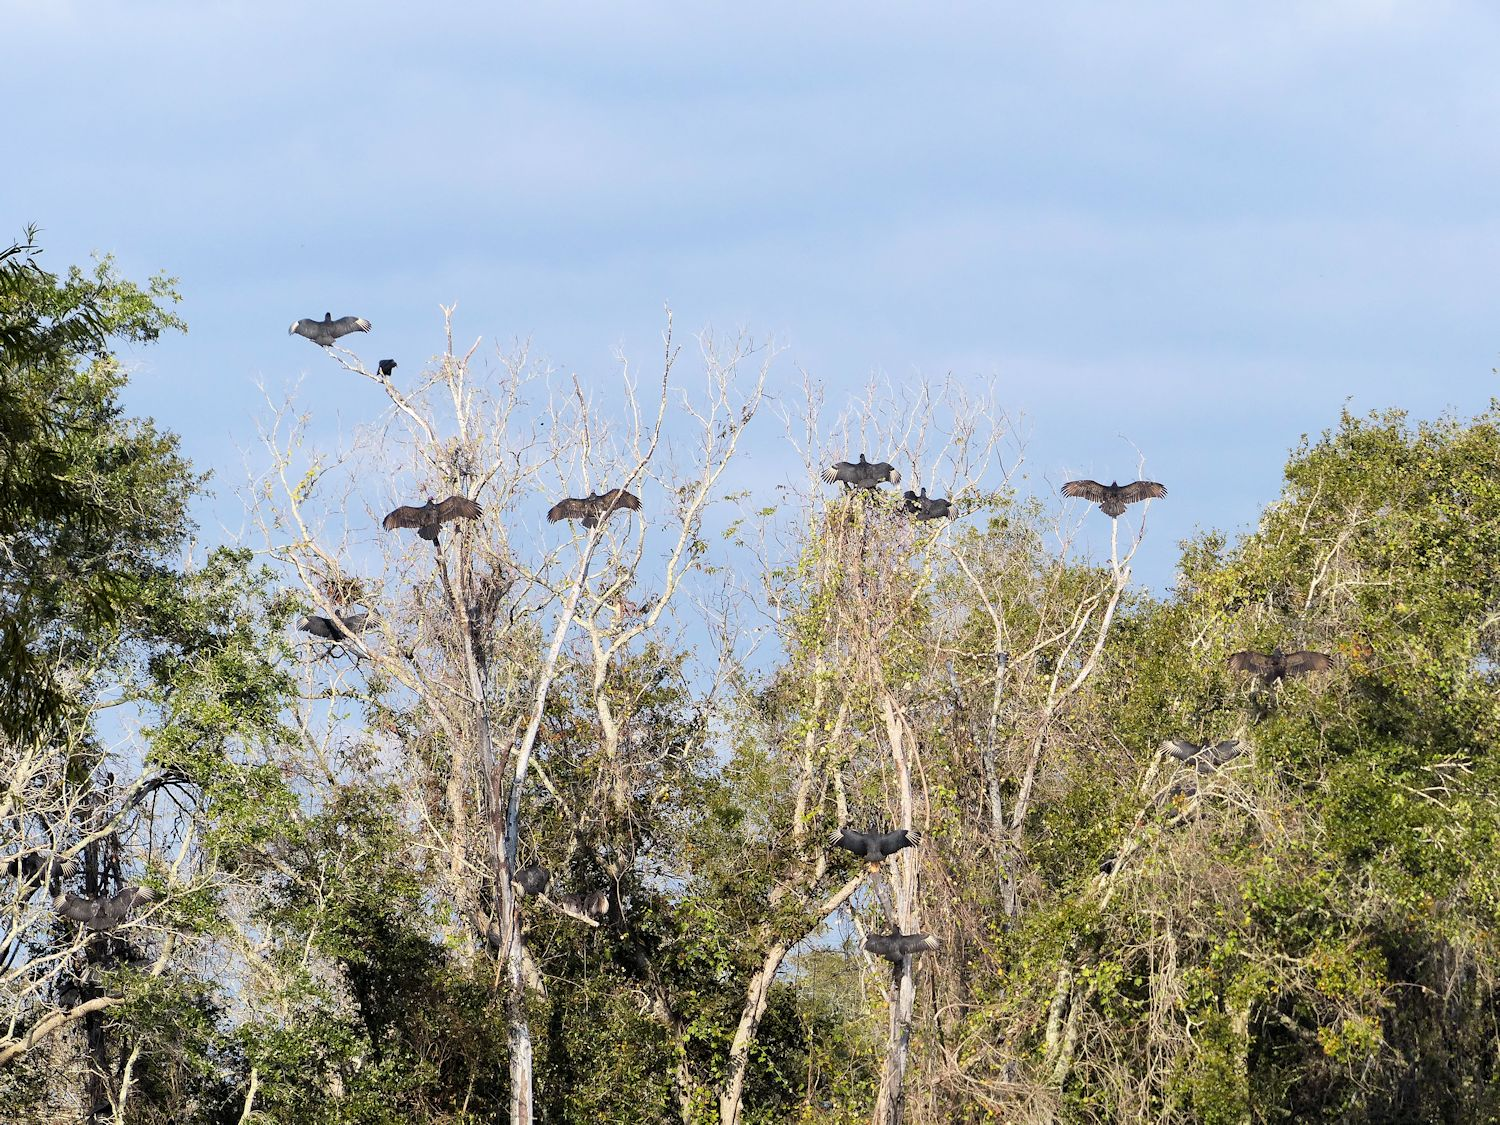 Vultures in the sunshine